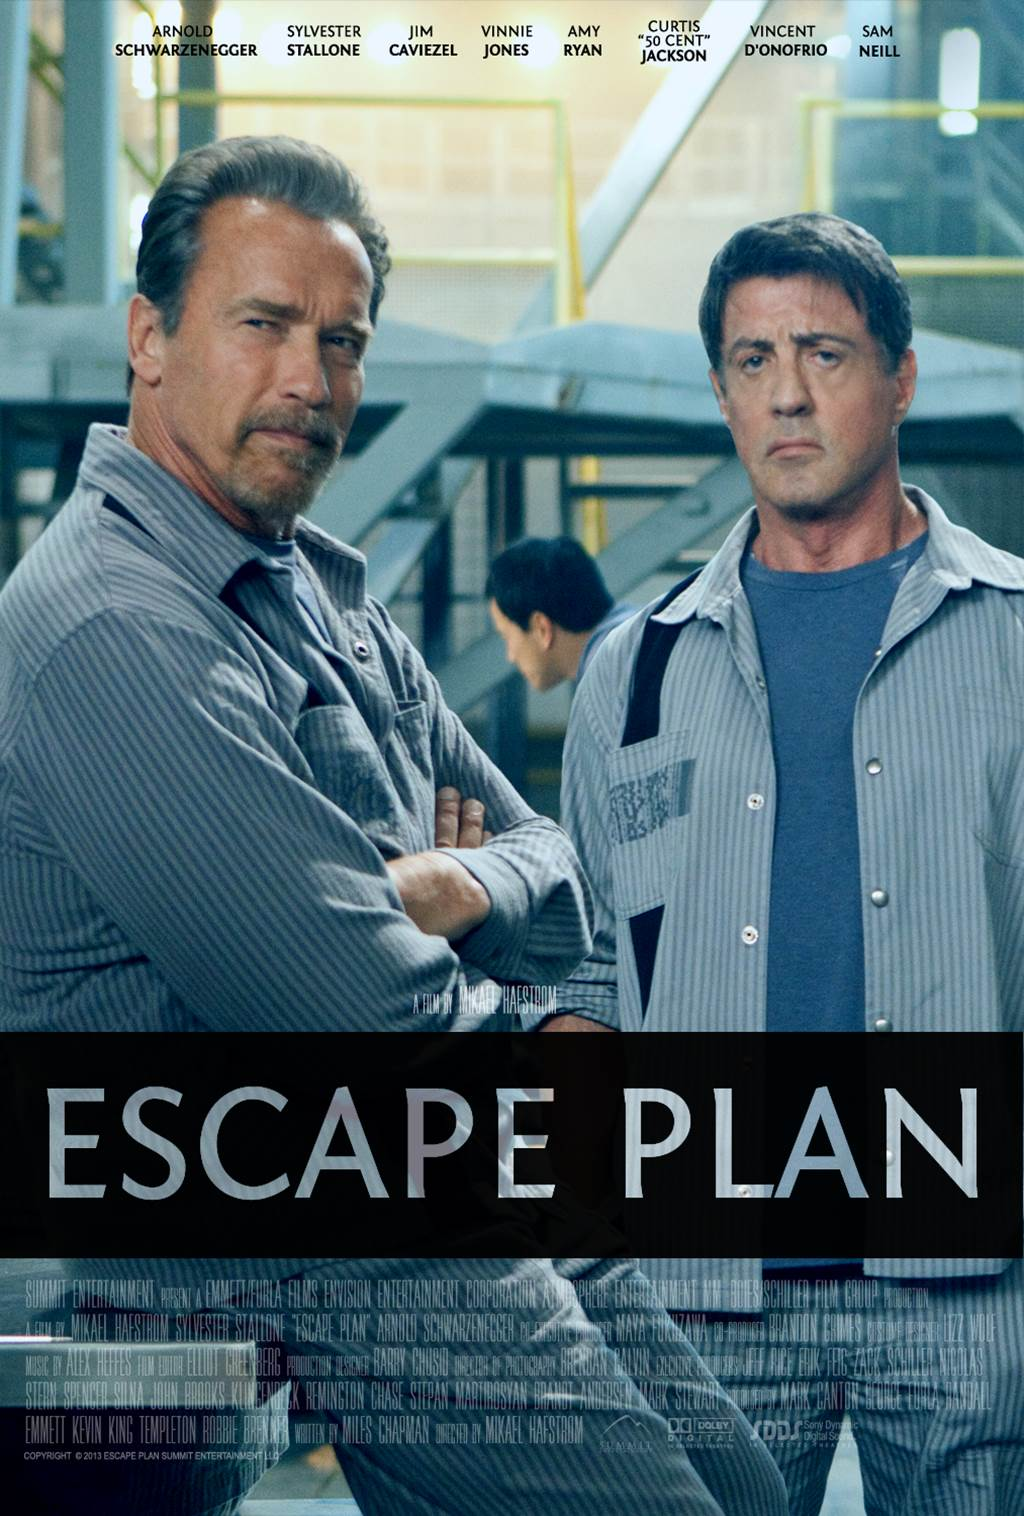 escape plan 2013 movie posters xcitefunnet